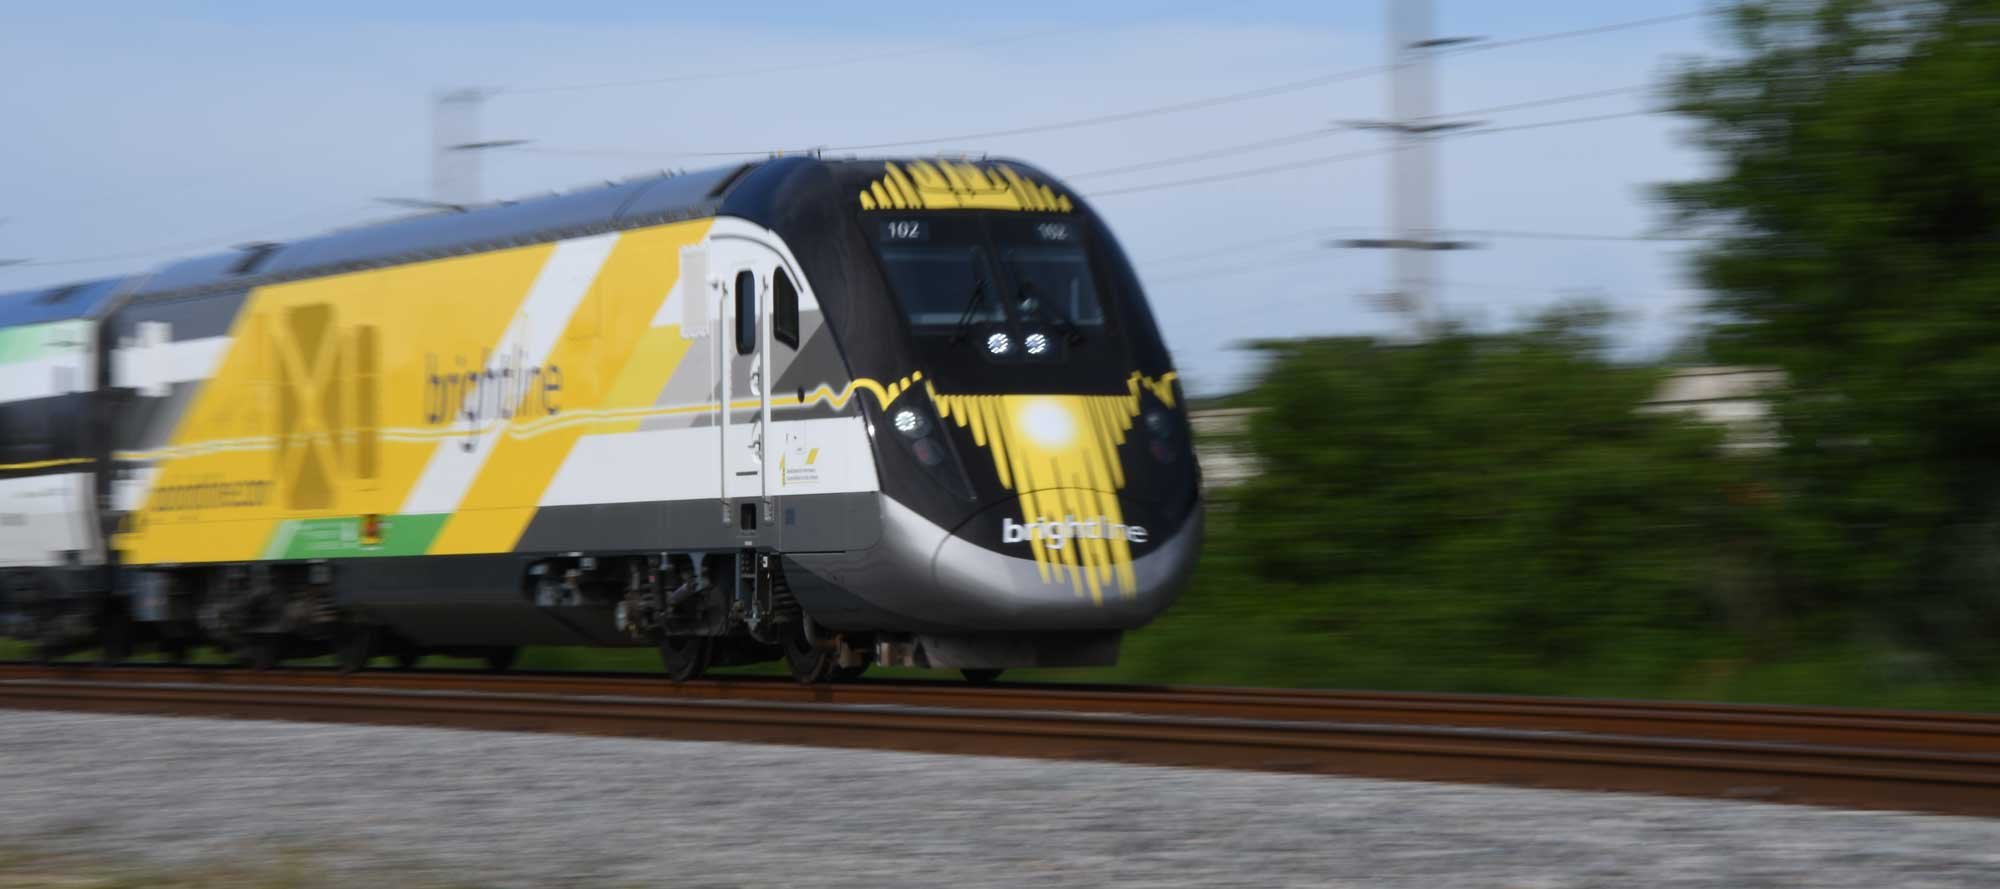 Brightline/Virgin Trains USA Archives - The Guardians of